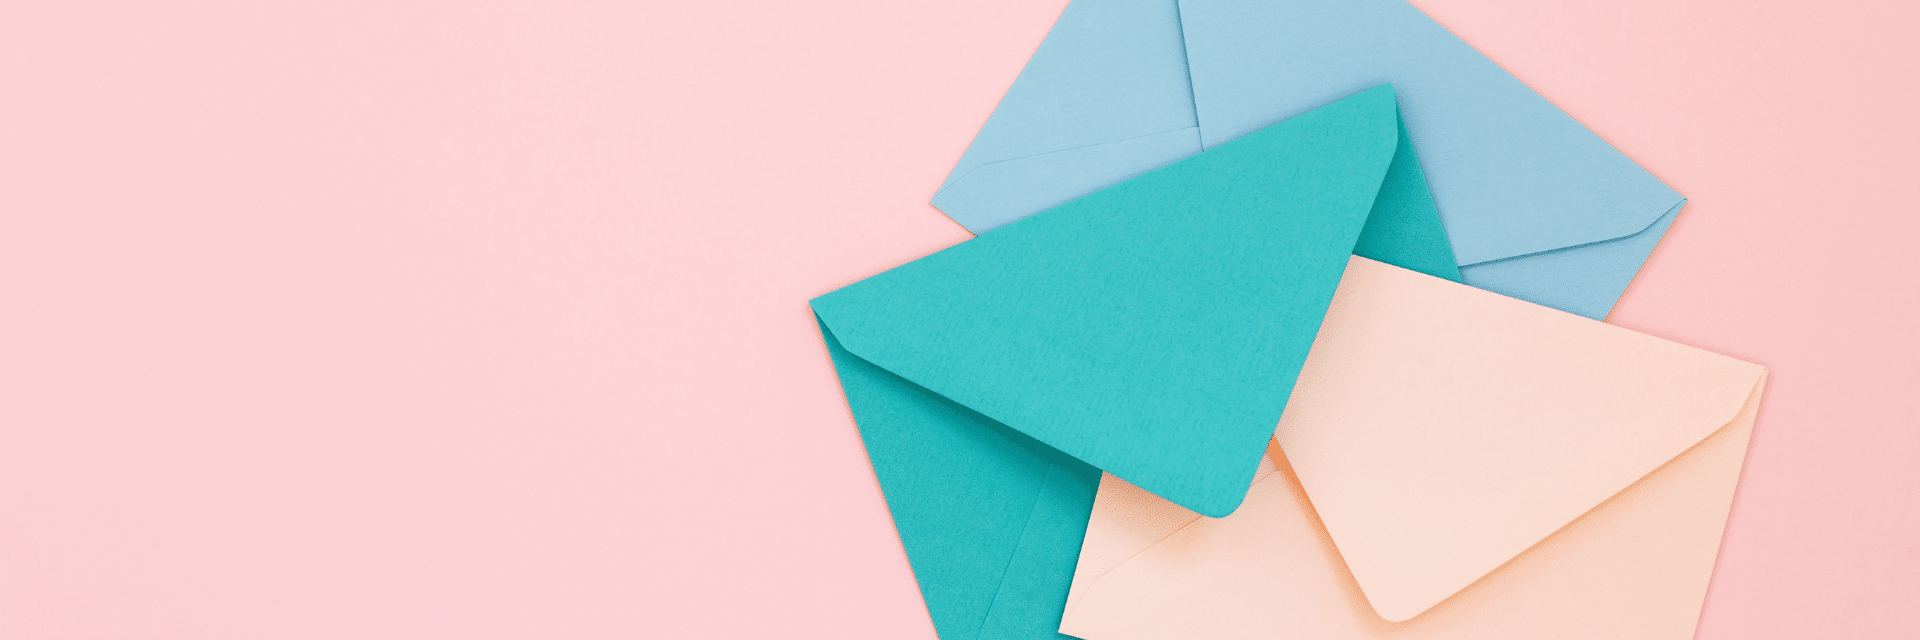 3 envelopes on pink background